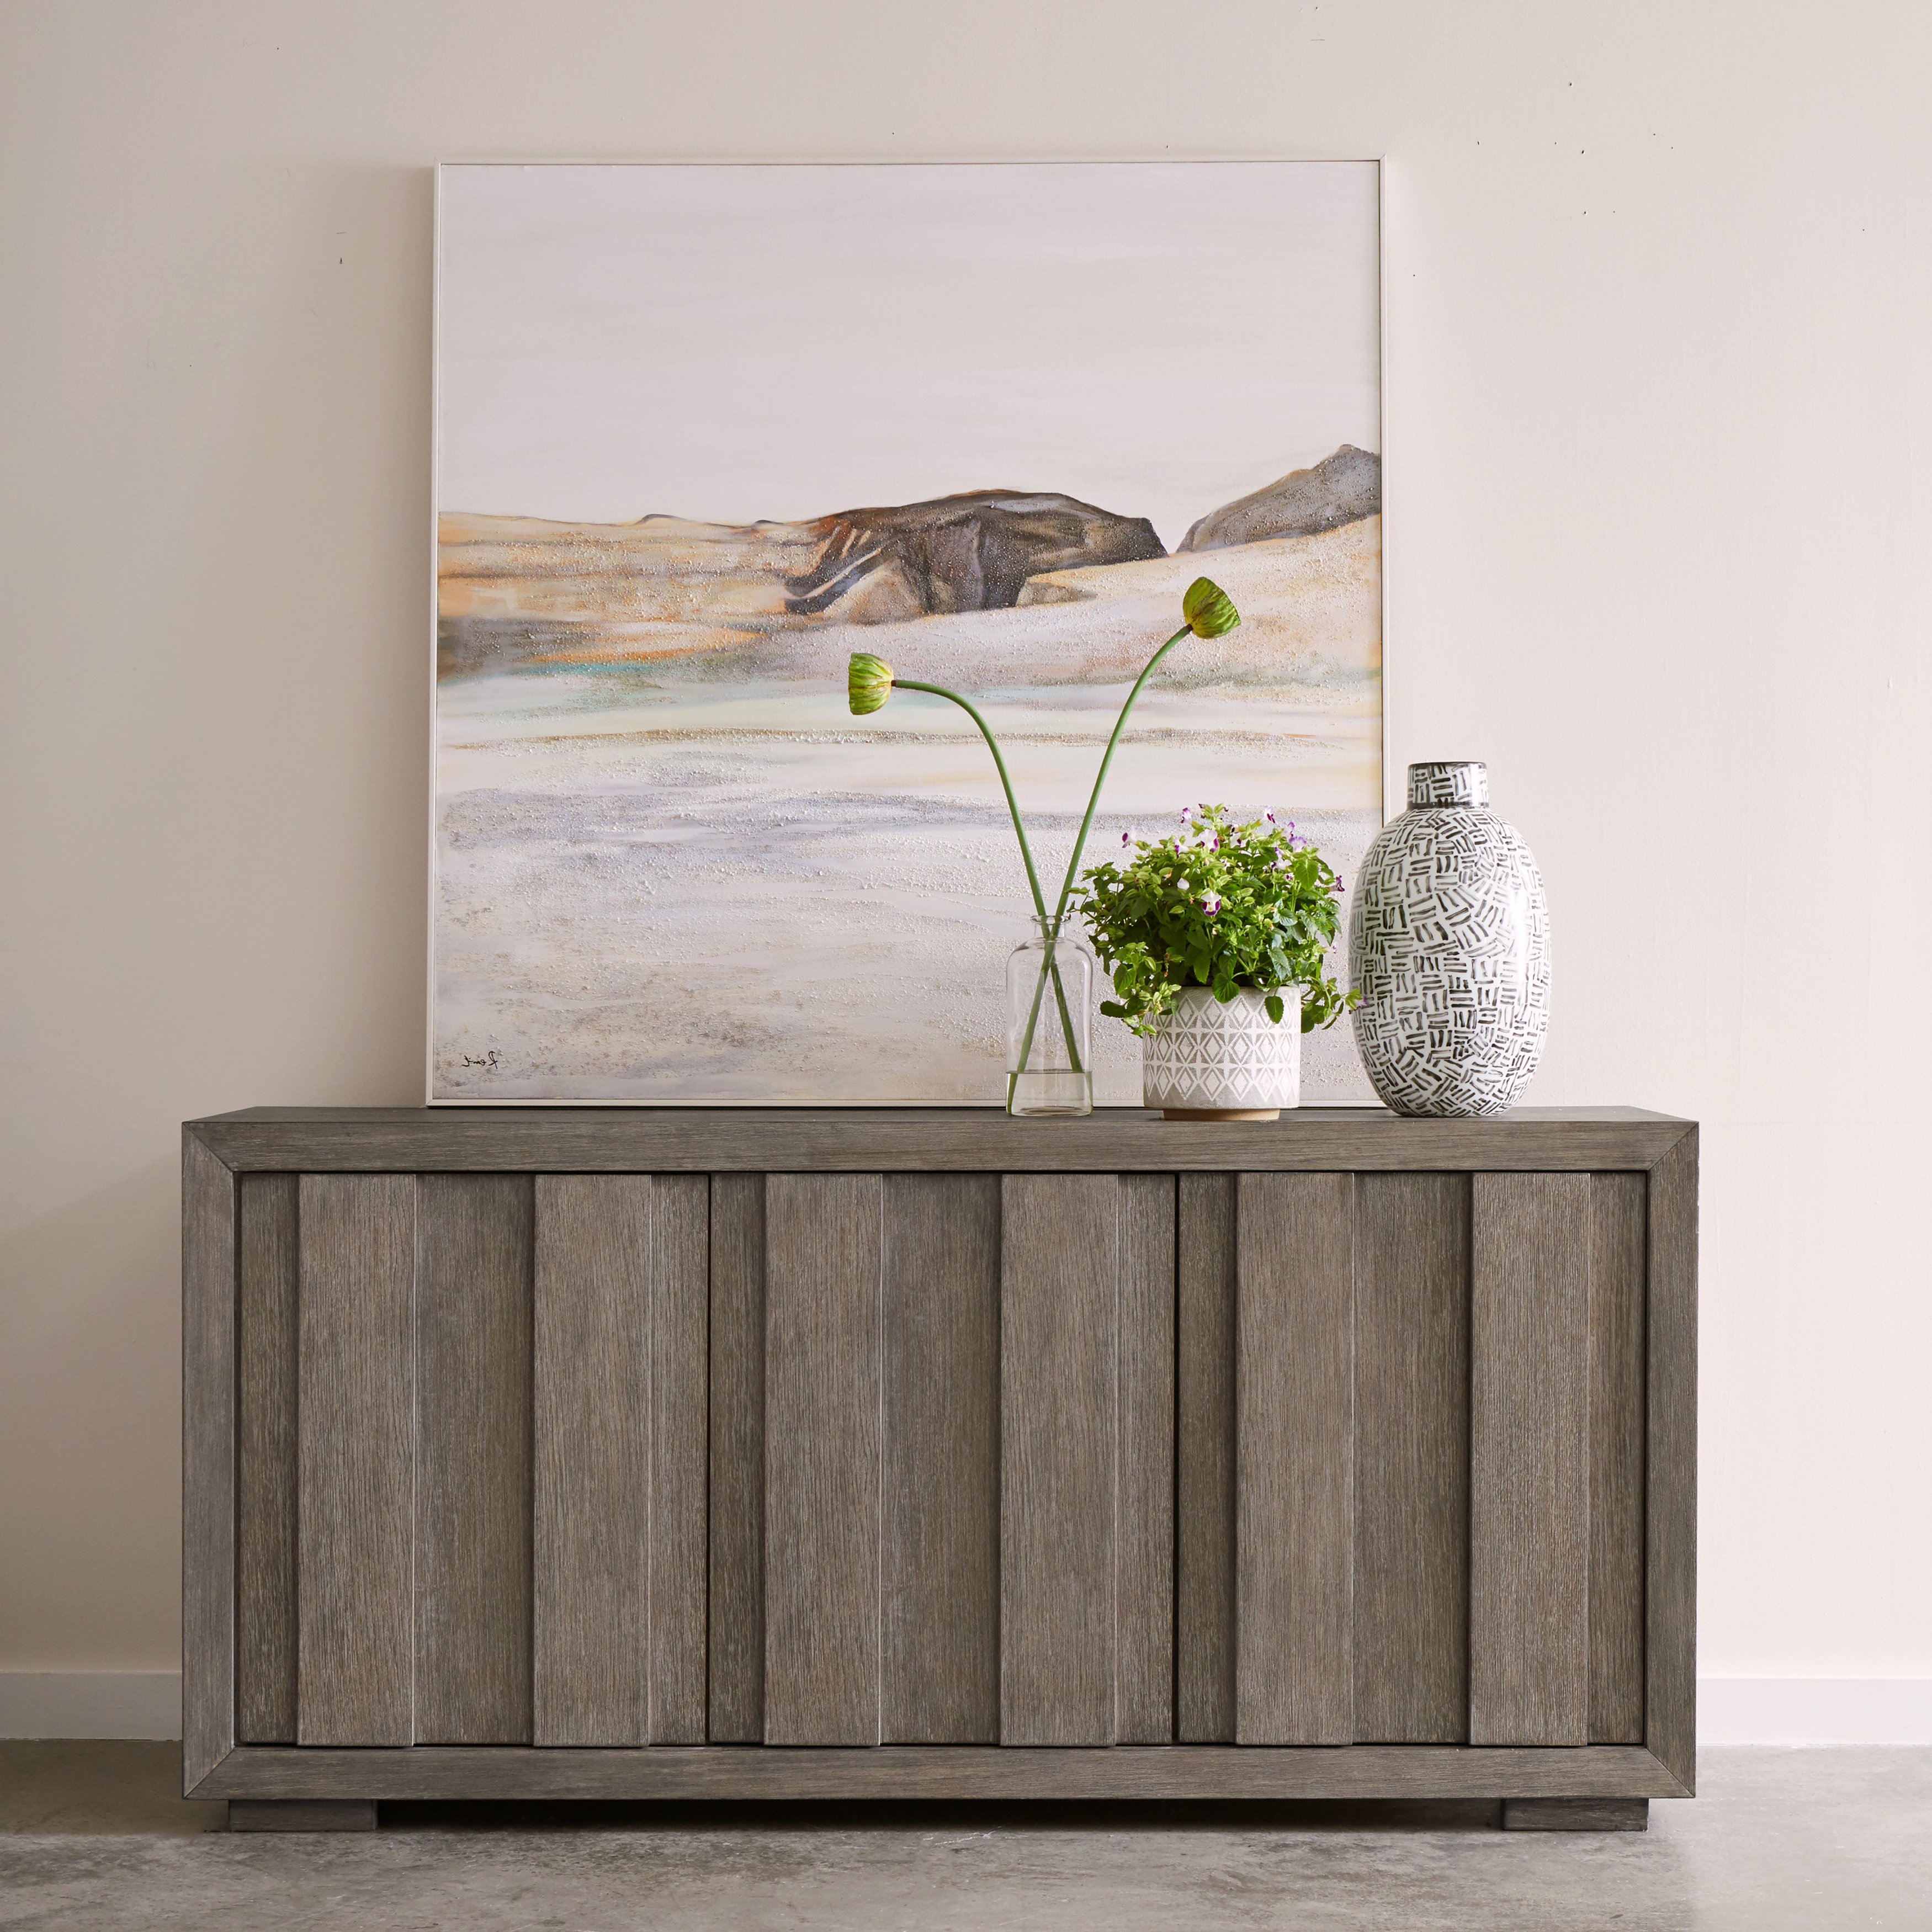 Most Popular Chicoree Charlena Sideboards Within Brisco Rustic Plank Front 3 Door Storage Credenza (View 12 of 20)